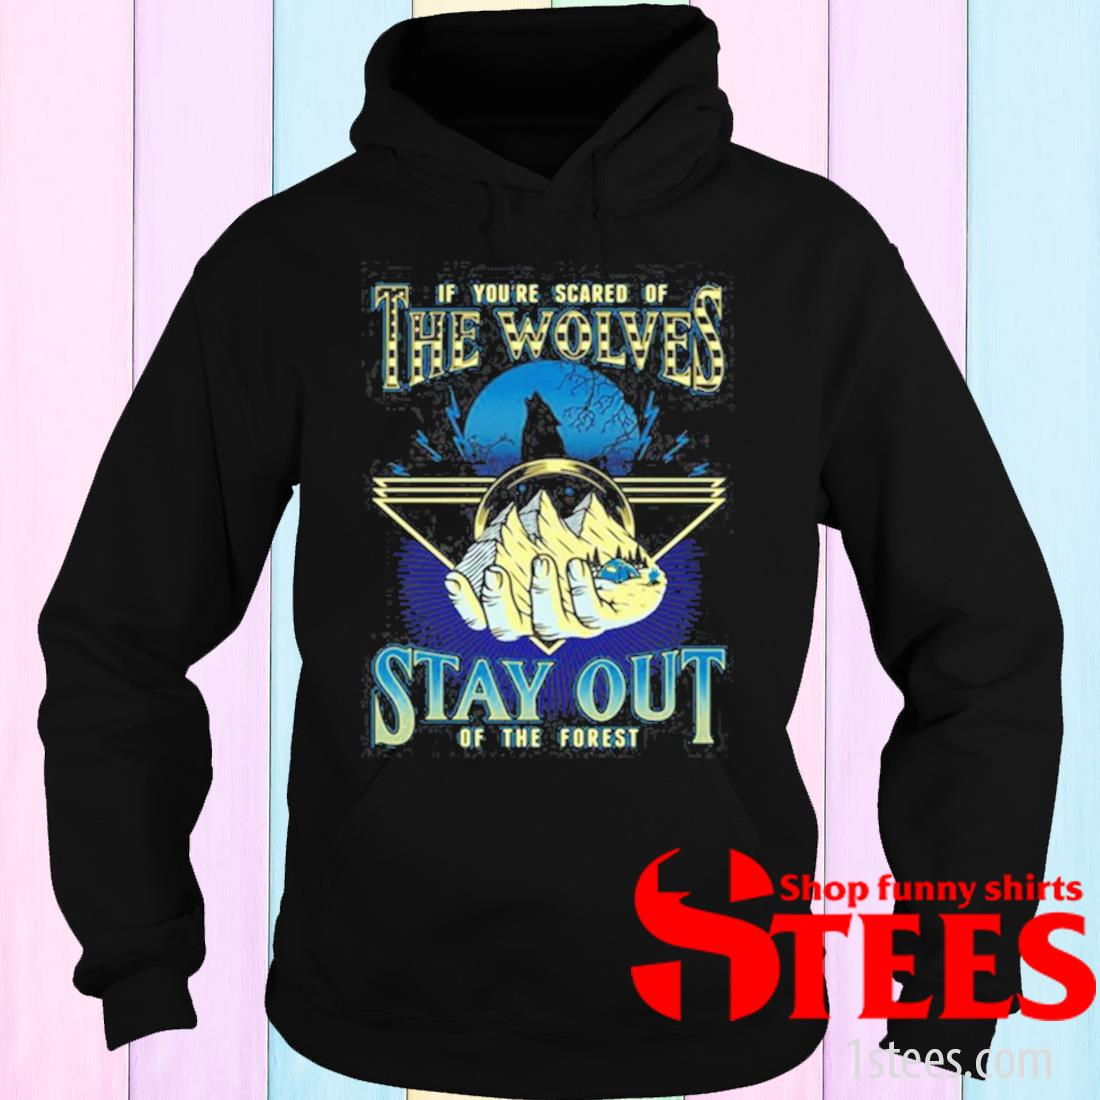 If You're Scared Of The Wolves Stay Out Of The Forest Shirt hoodie